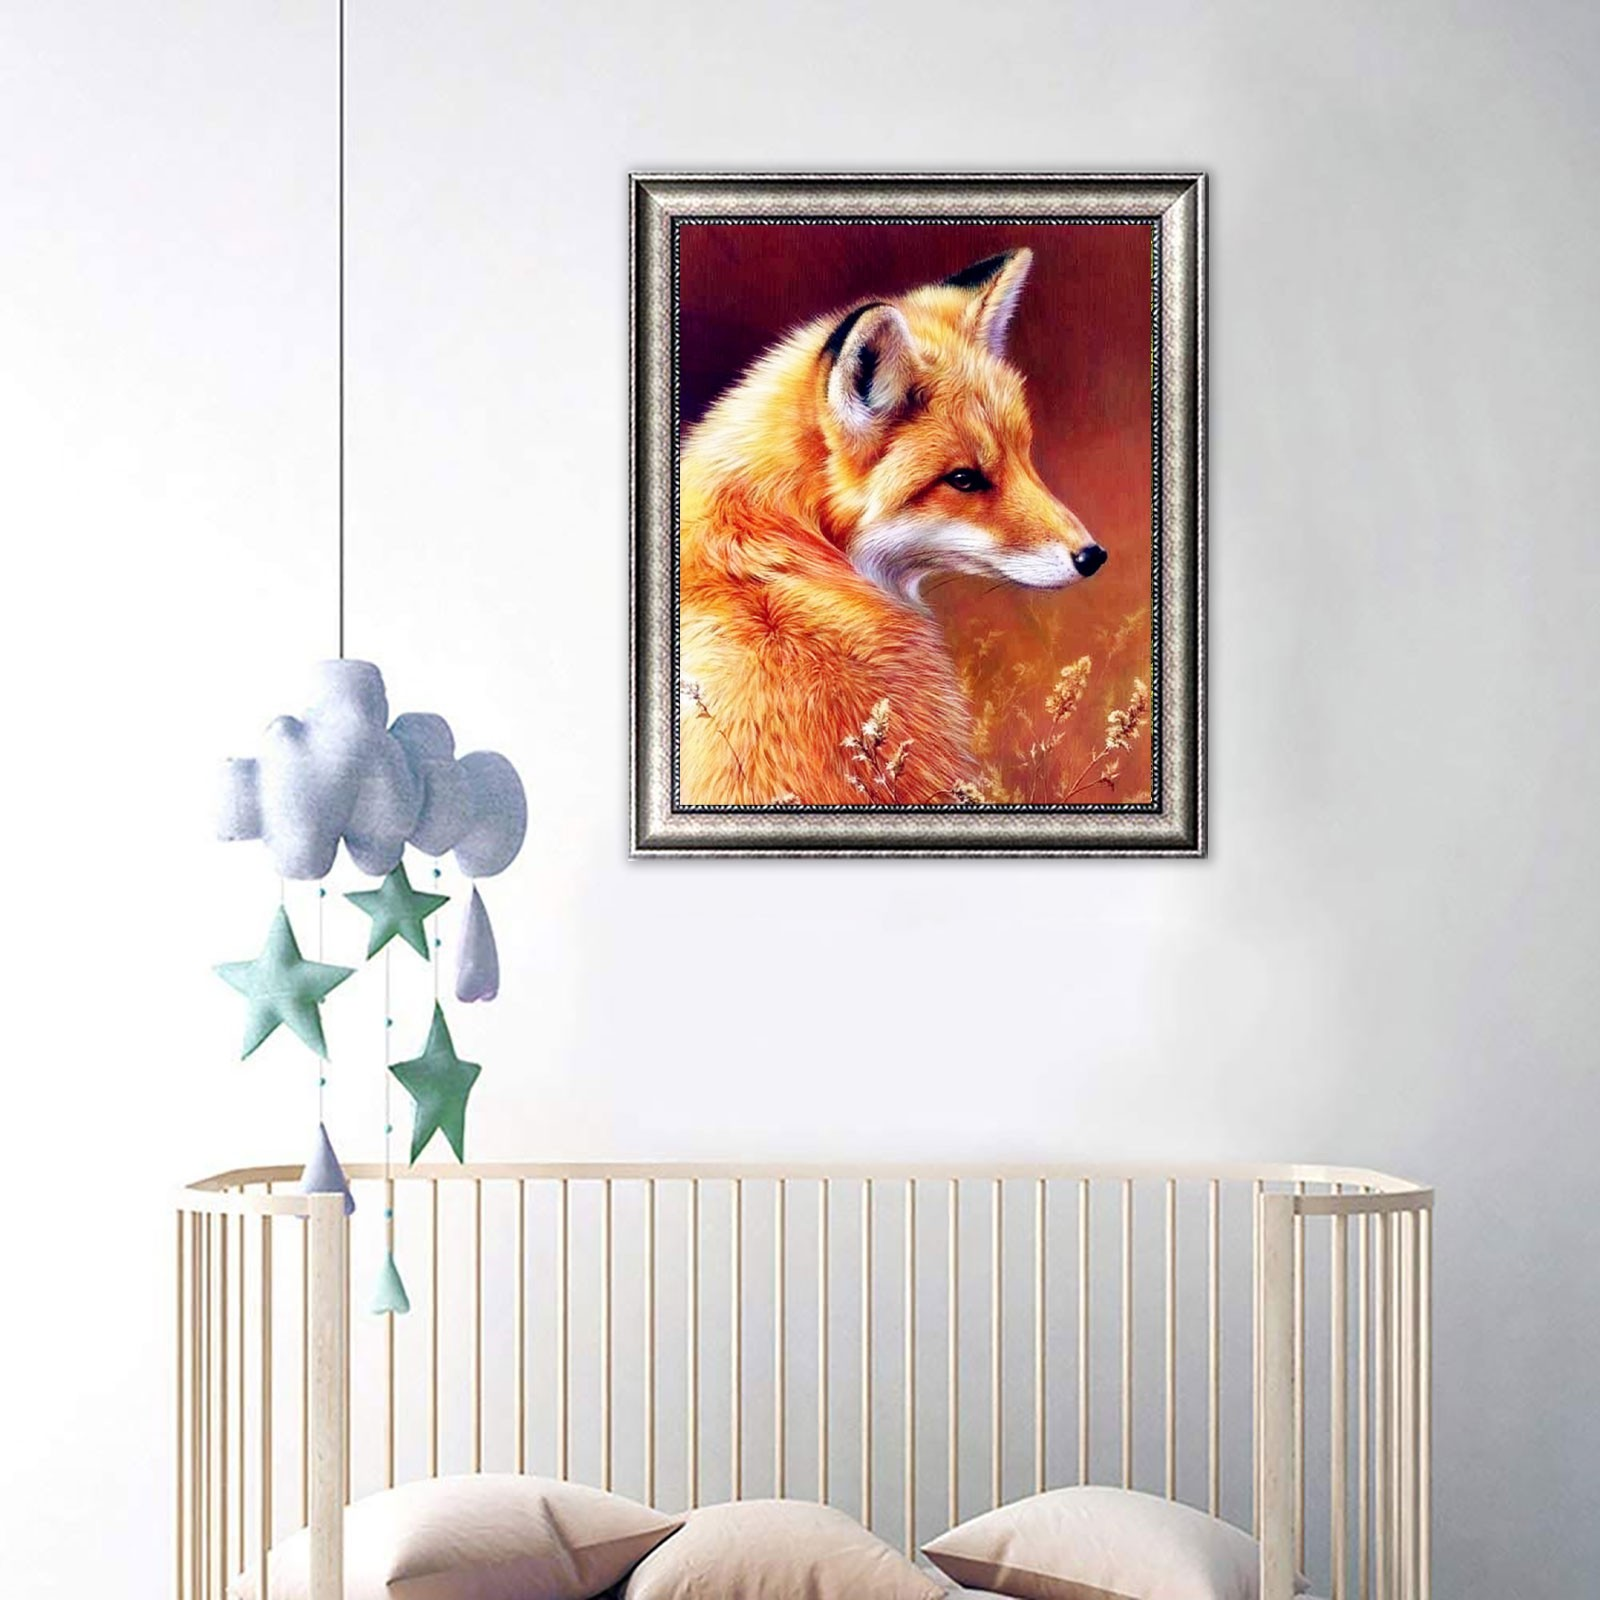 Full Diamond Embroidery Fox Diamond Painting Animal Full Drill Square Diamond Picture Puzzle 5d 2021 Hot Gift Dropshipping D7